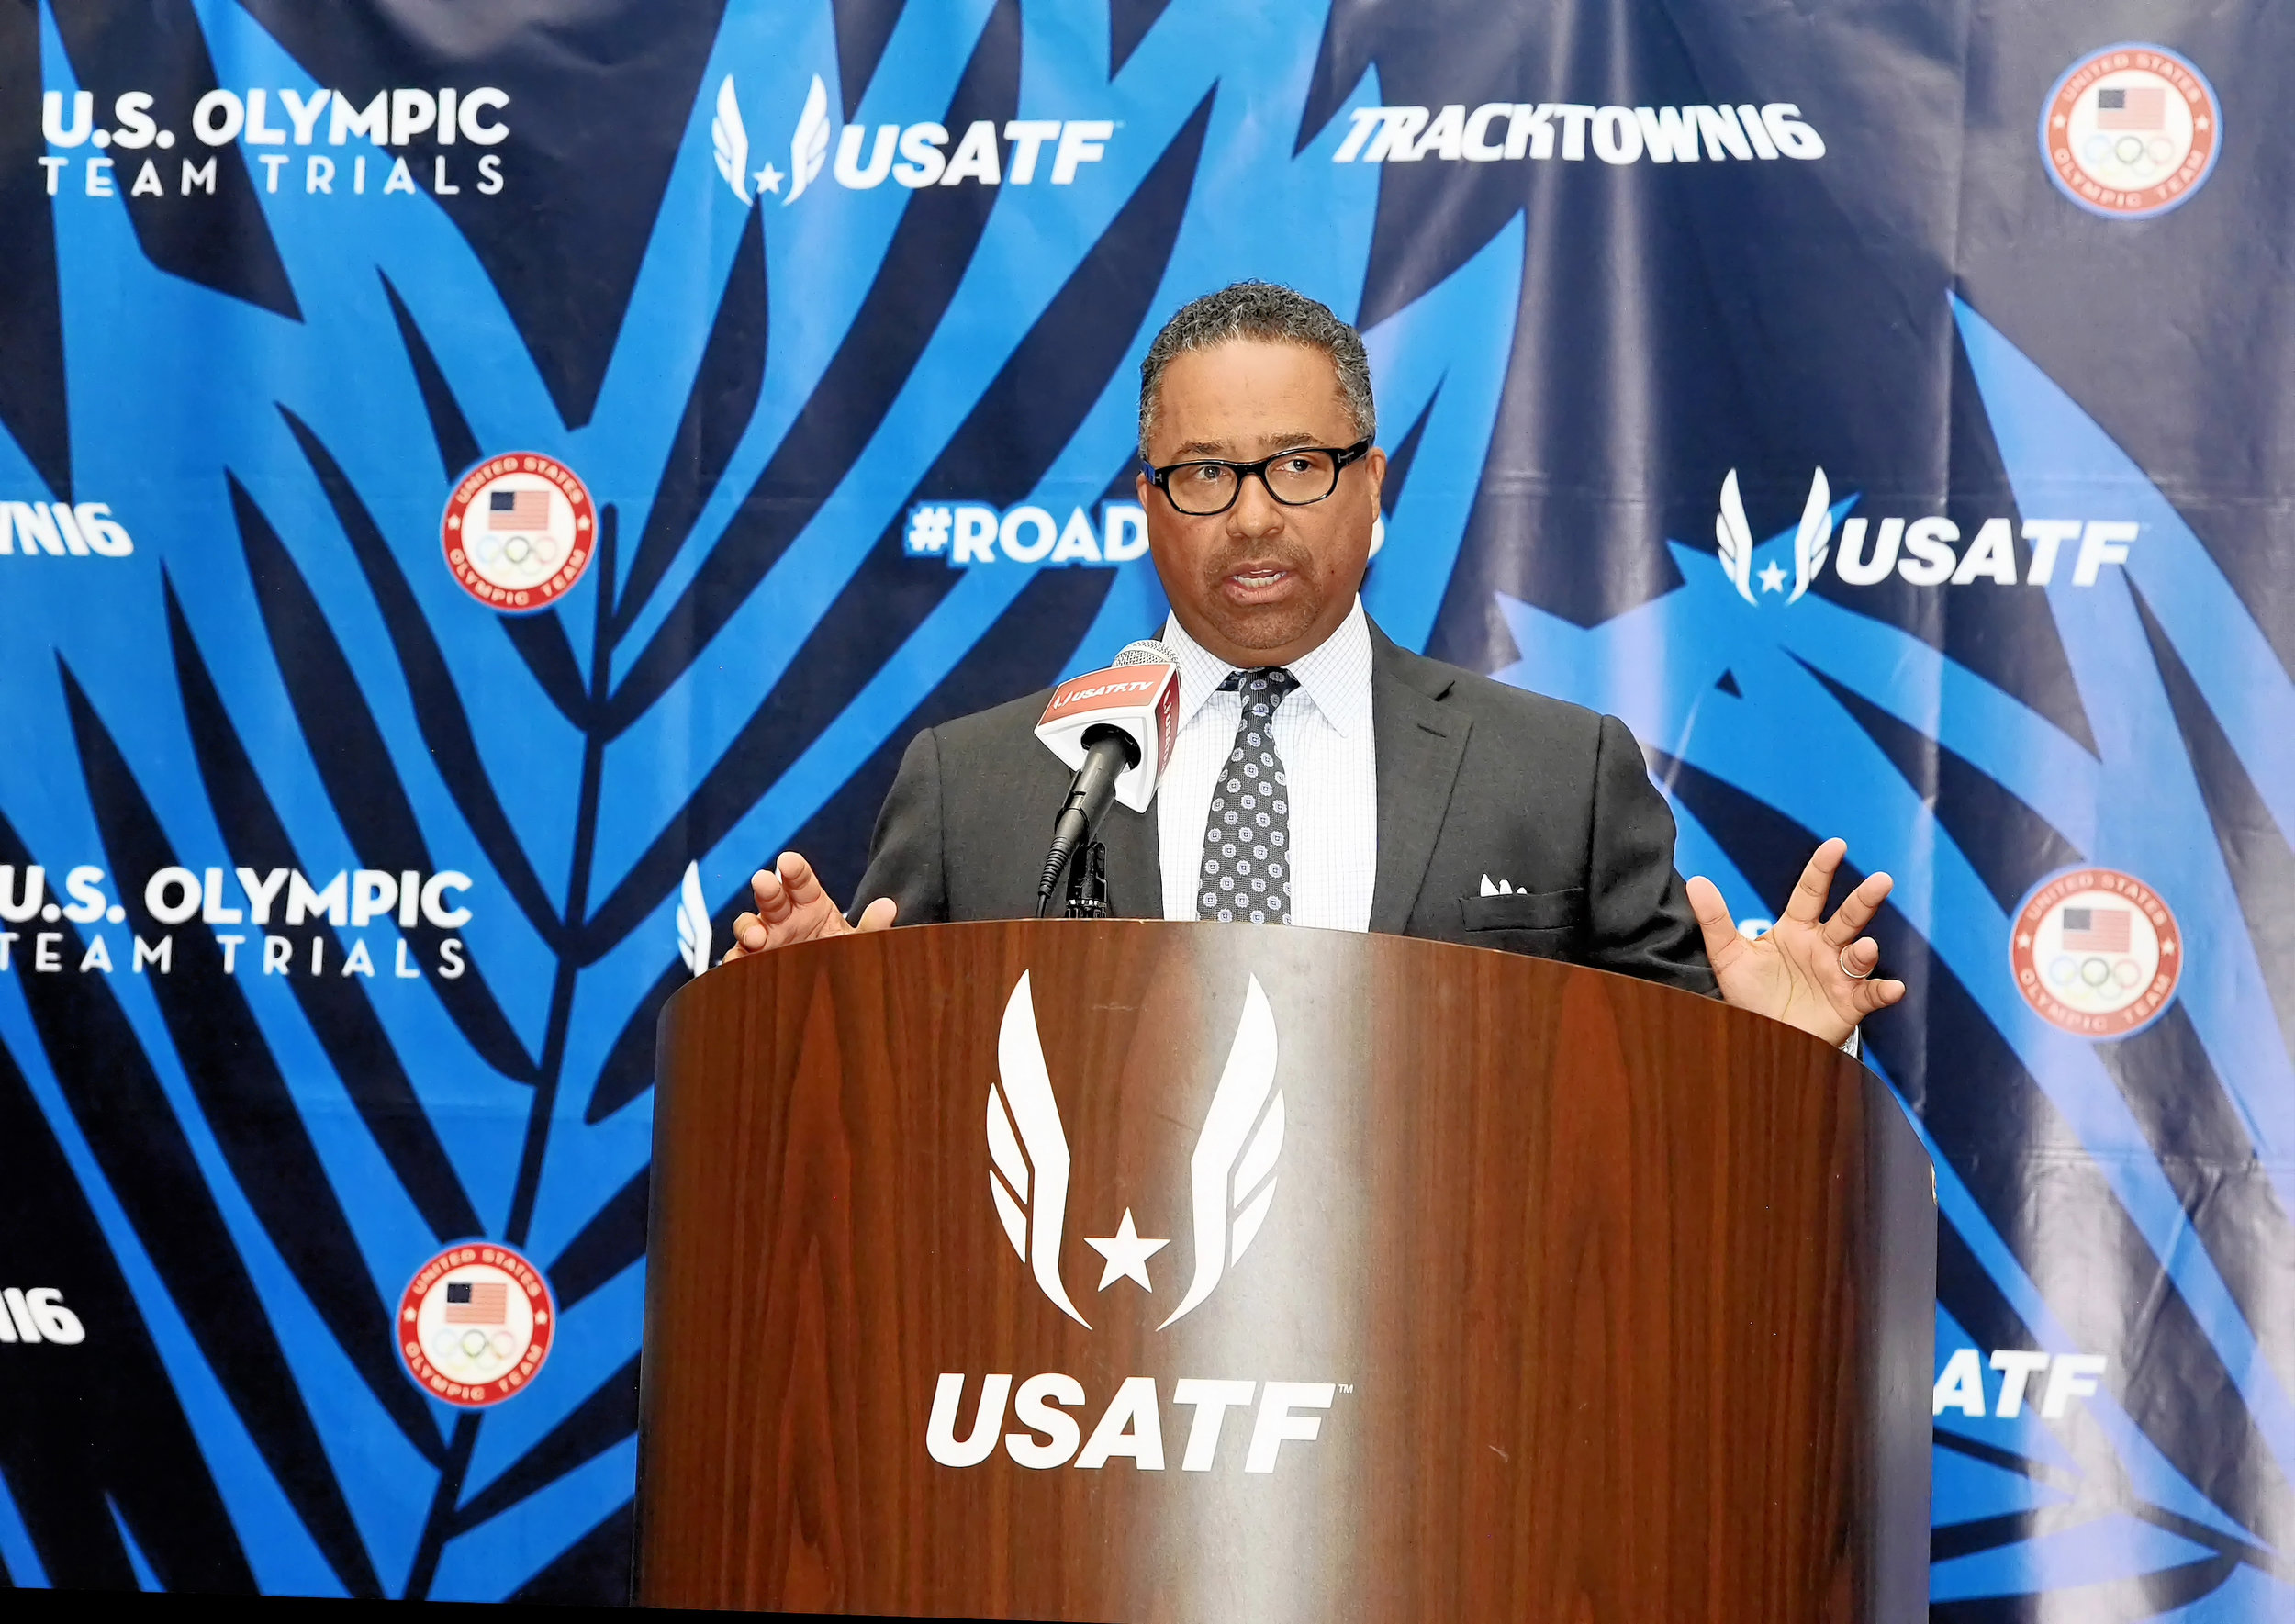 Max Siegel, USATF chief executive, at Tuesday's news conference // Errol Anderson